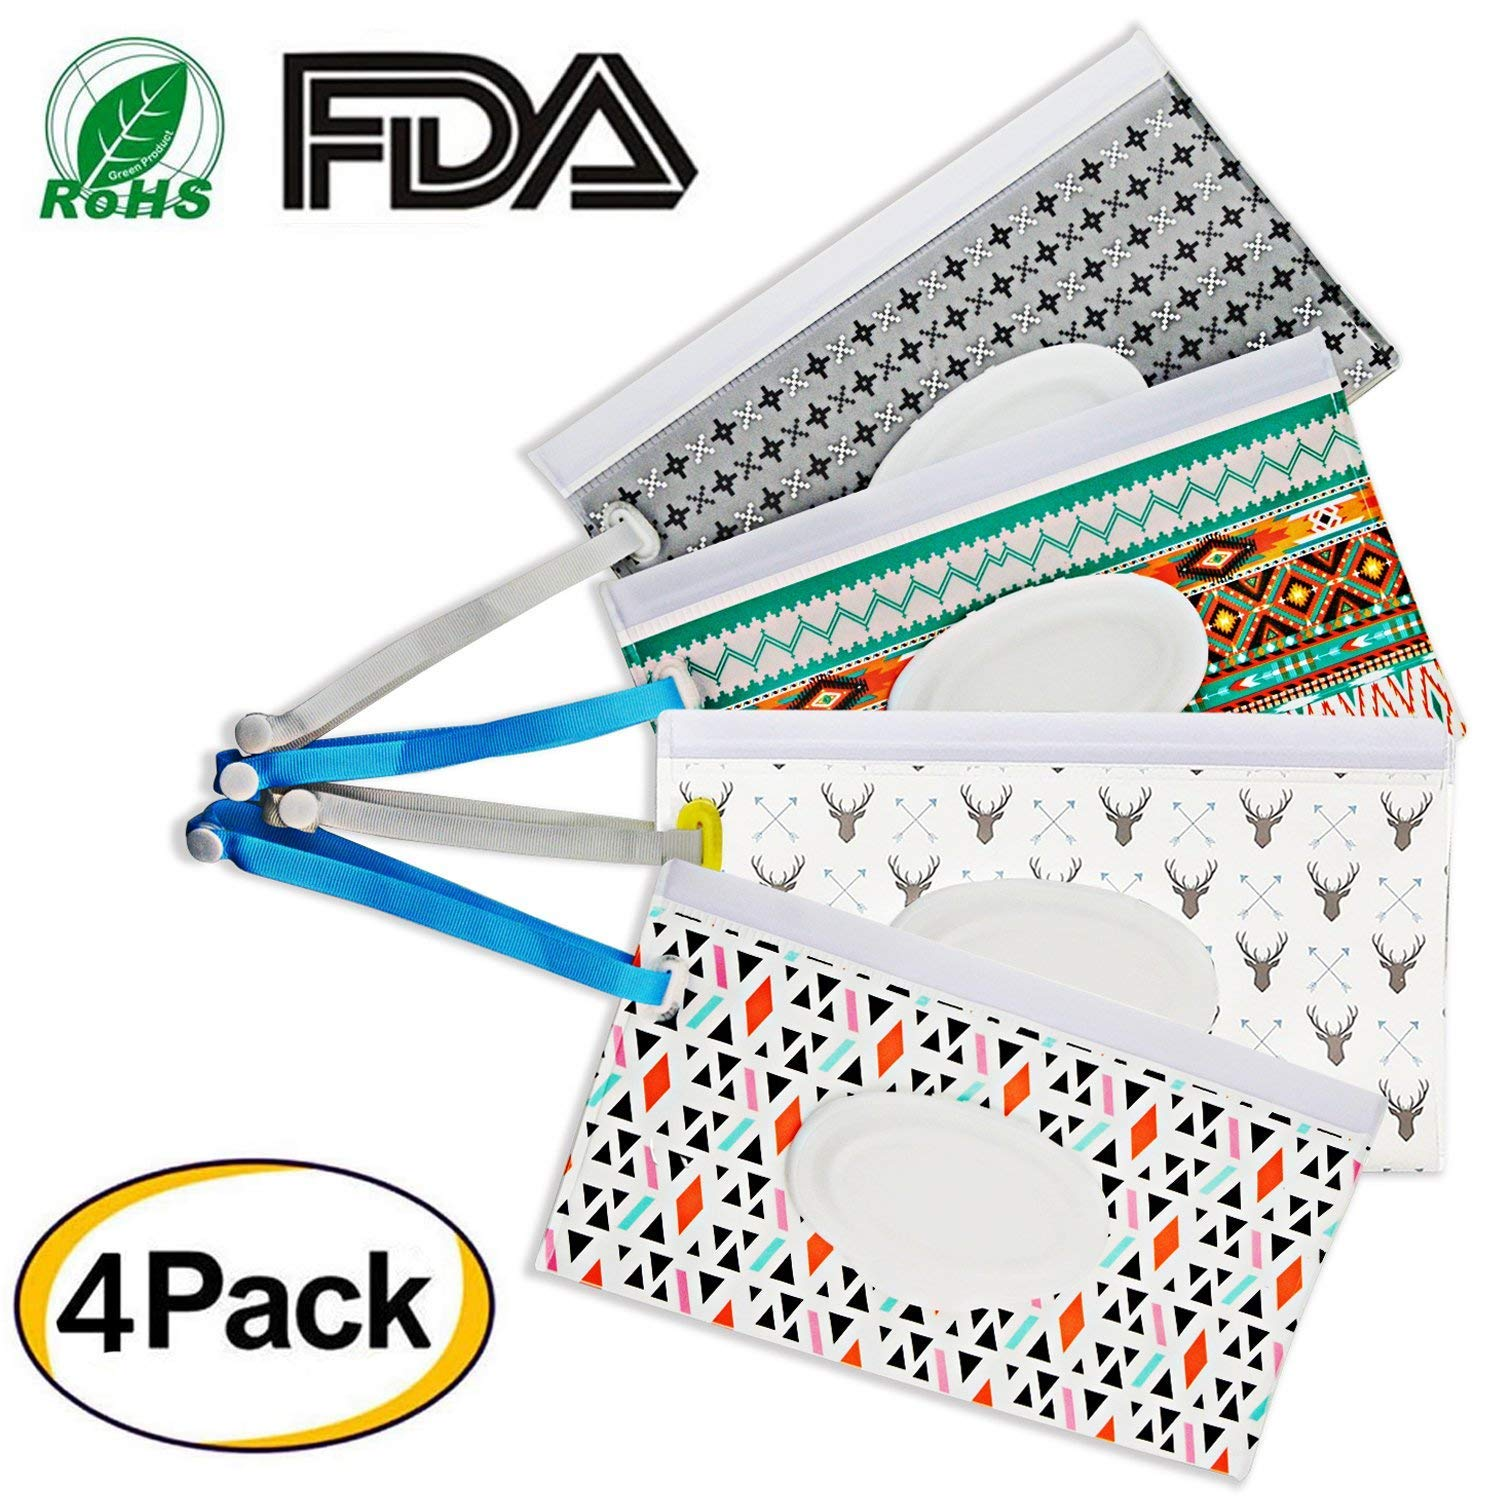 Reusable Wet Wipe Pouch Dispenser for Baby Or Personal Wipes, Eco Friendly Wipe Pouches, Wet Wipe Portable Travel Cases(4PCS)